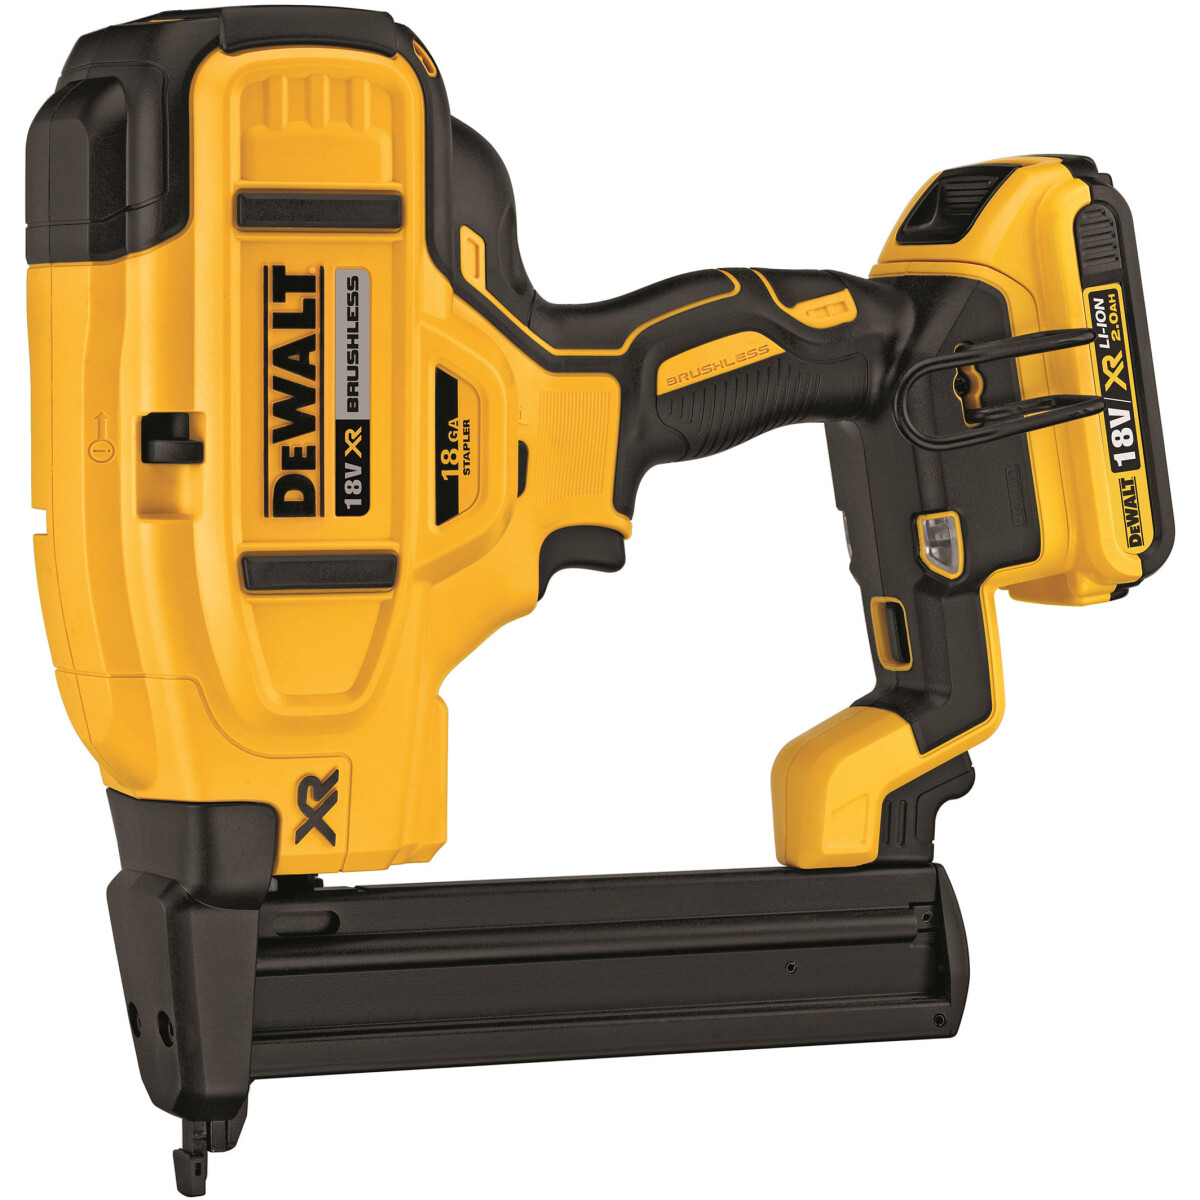 Dewalt DCN681D2 18V Cordless XR Brushless 18Ga Narrow Crown Stapler with 2 x 2.0Ah Batteries in HD Kit Box